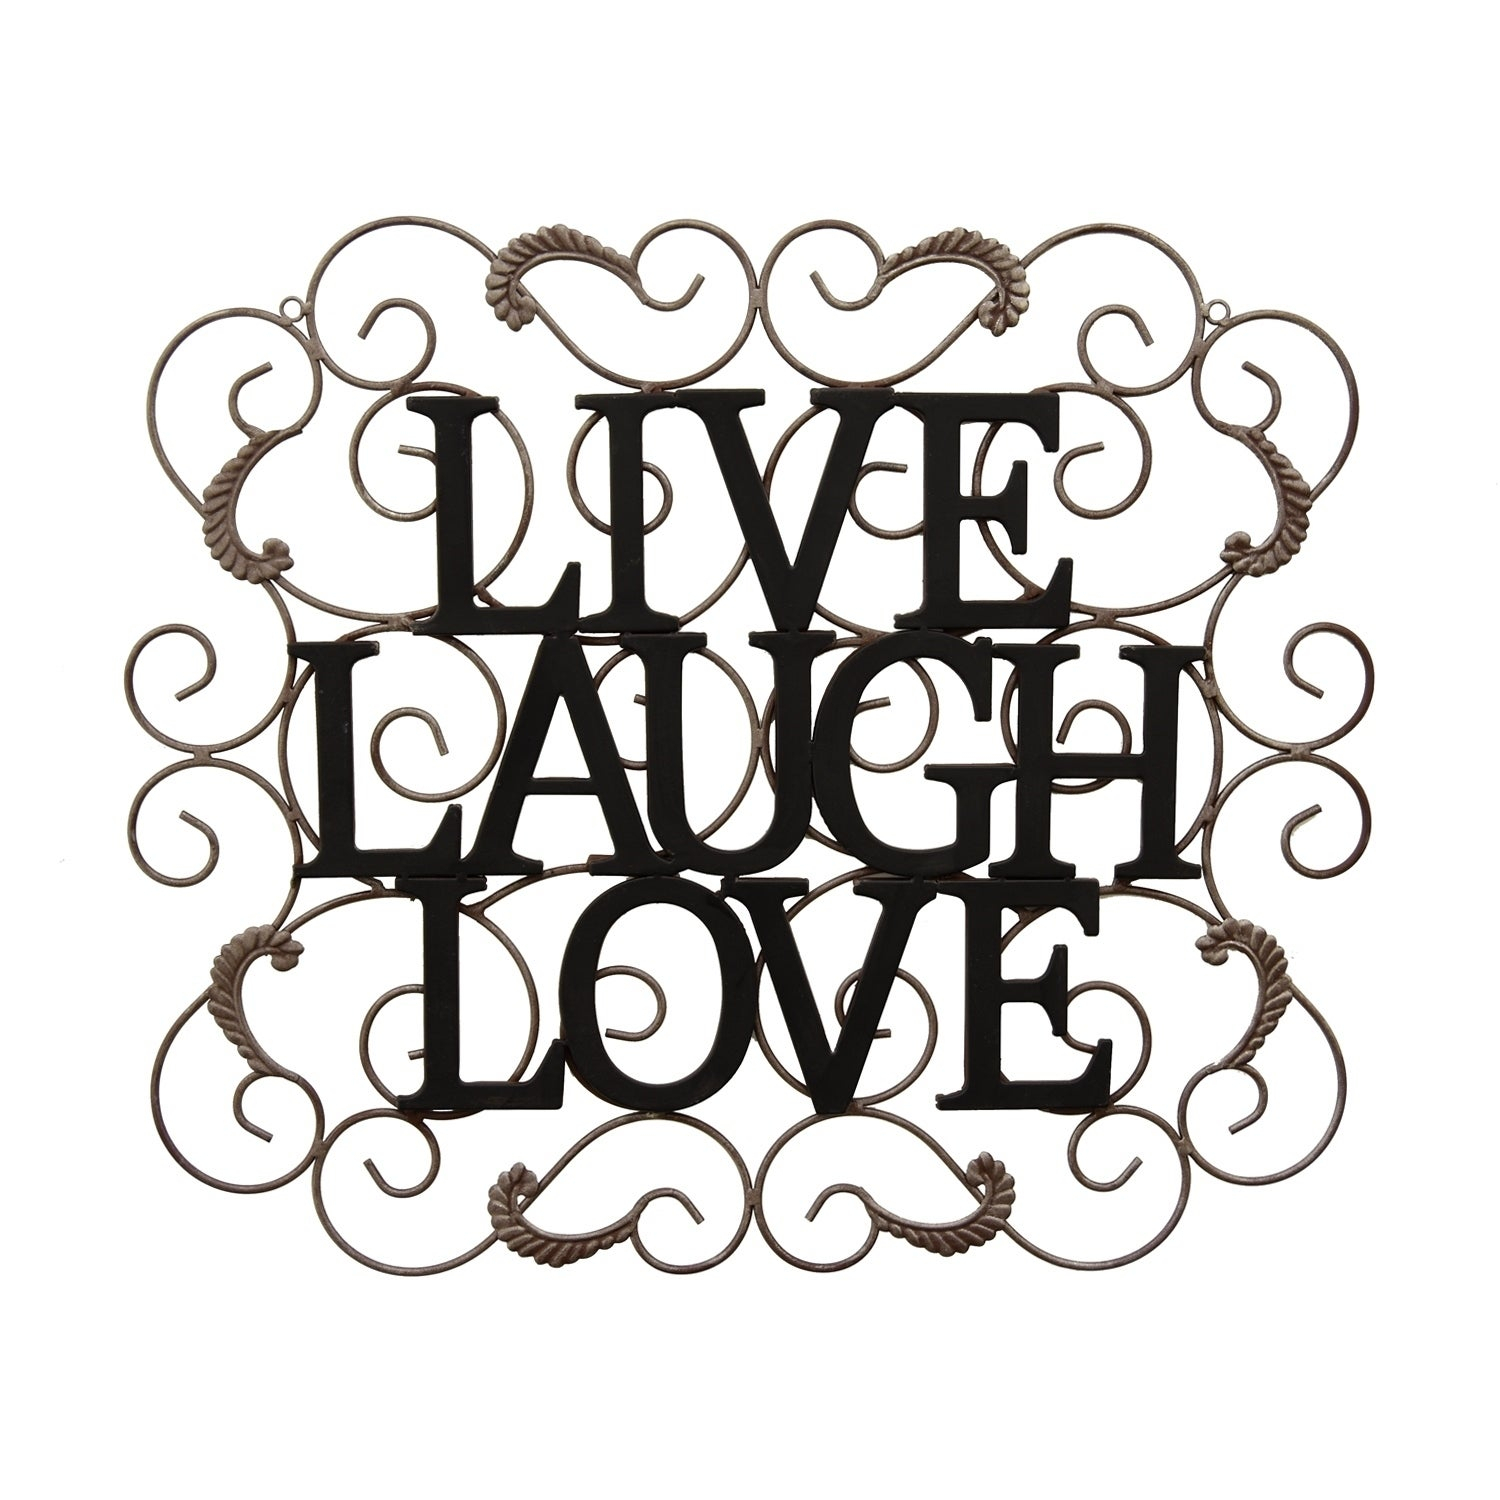 Live Love Laugh 3 Piece Black Wall Decor Sets with Preferred Shop Three Hands Wall Decor - Live/laugh/love - Free Shipping Today